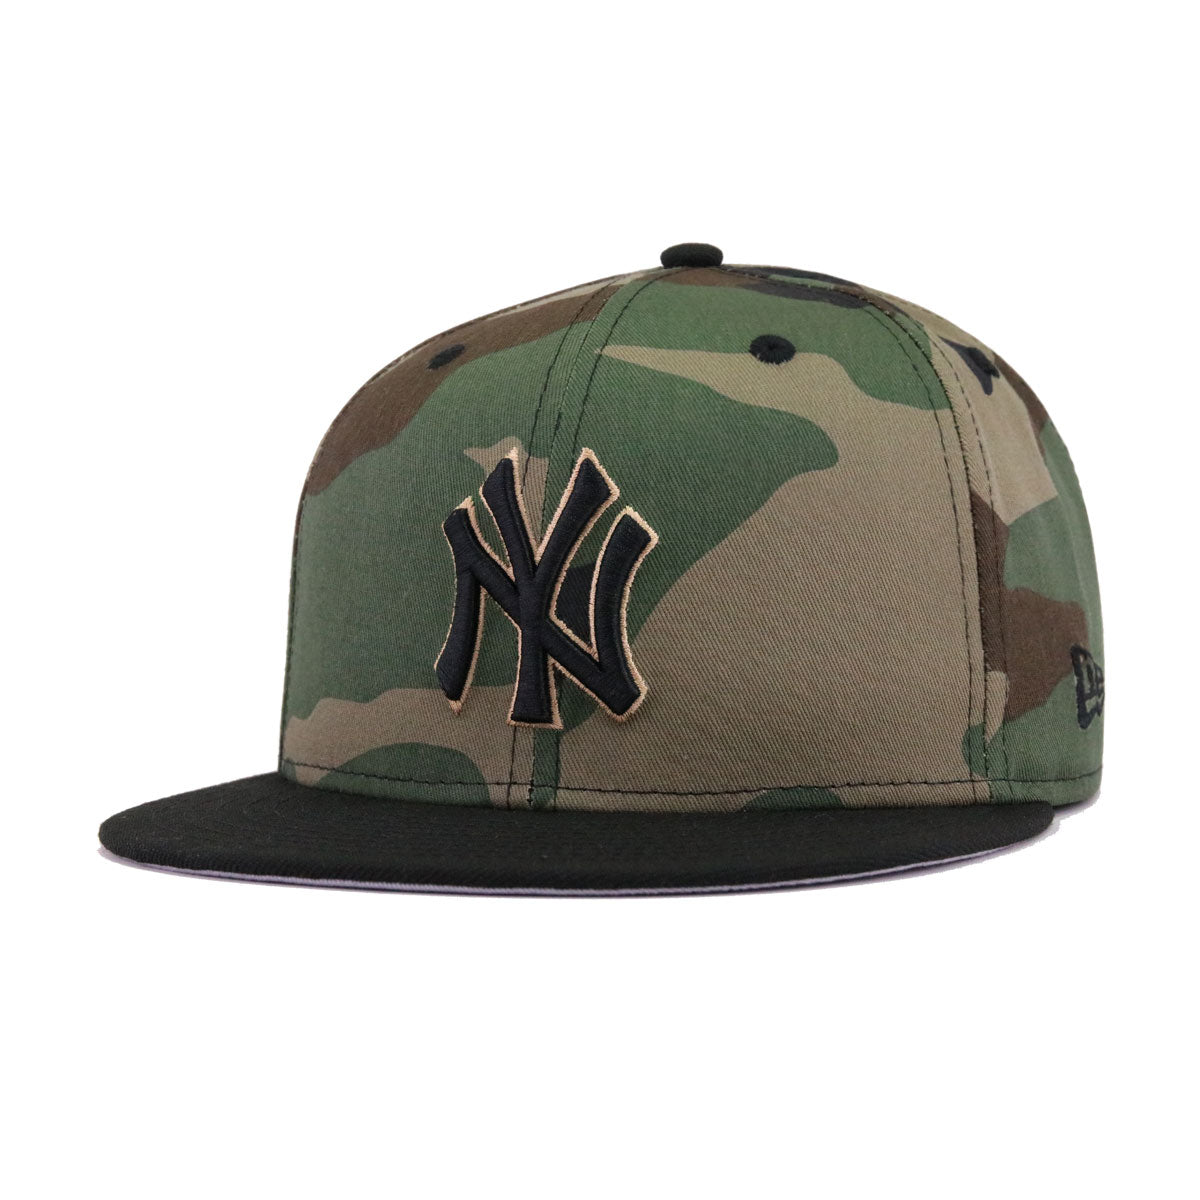 9596410555c New York Yankees Woodland Camouflage Black 100th Annivesary New Era 9Fifty  Snapback